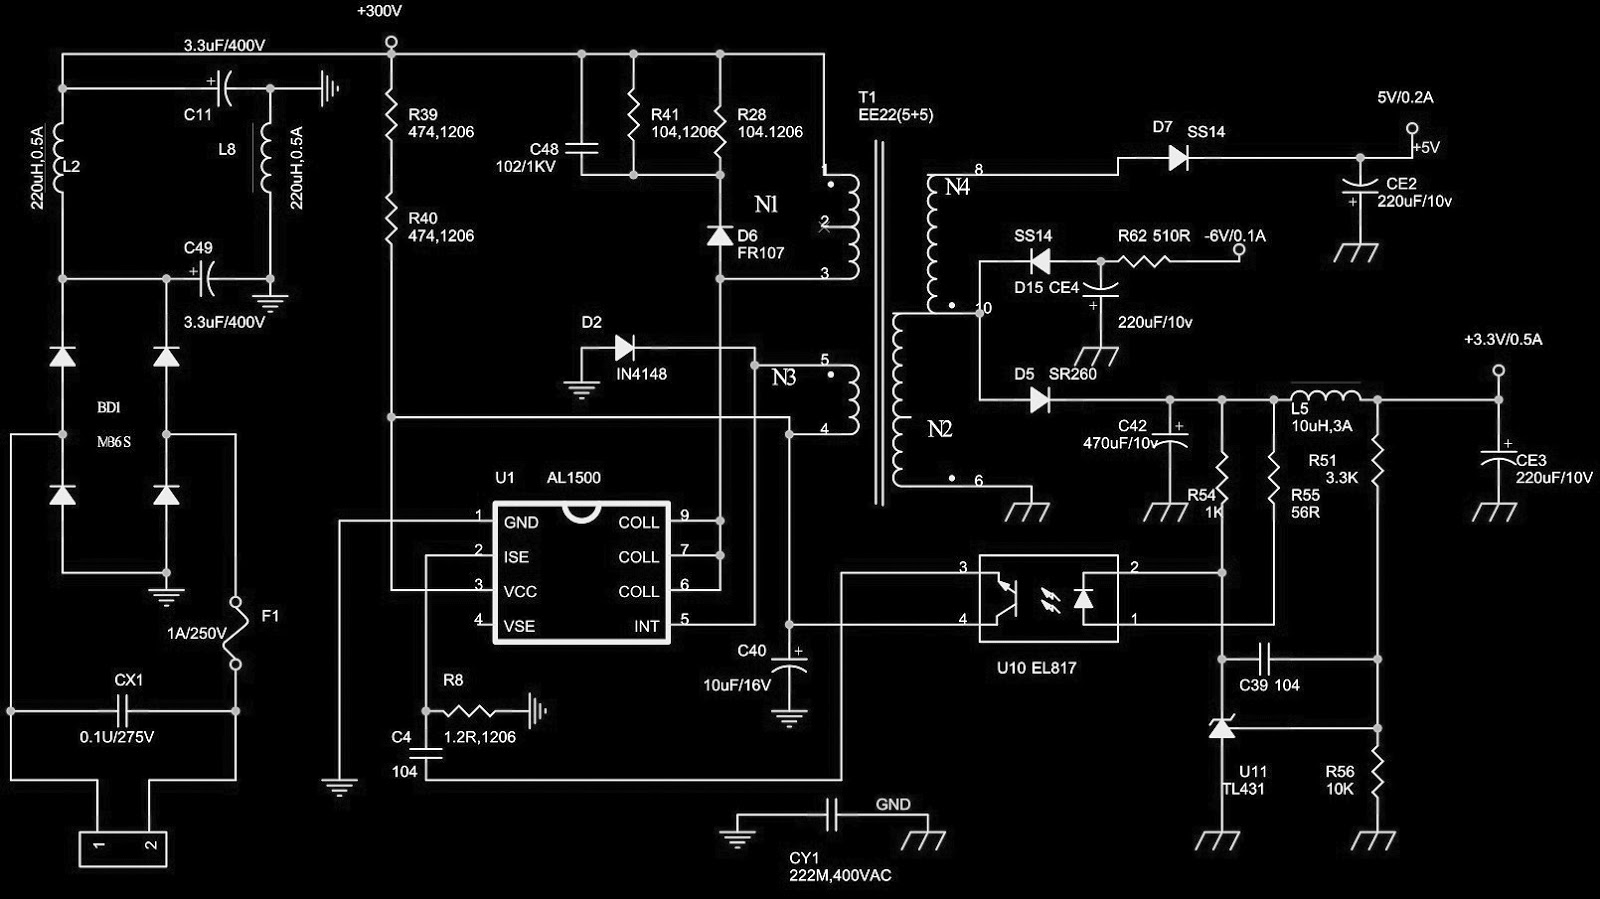 Dvd Player Power Supply Circuits And Troubleshooting Viper22a Smps Circuit Diagram Click On The Pictures To Zoom In